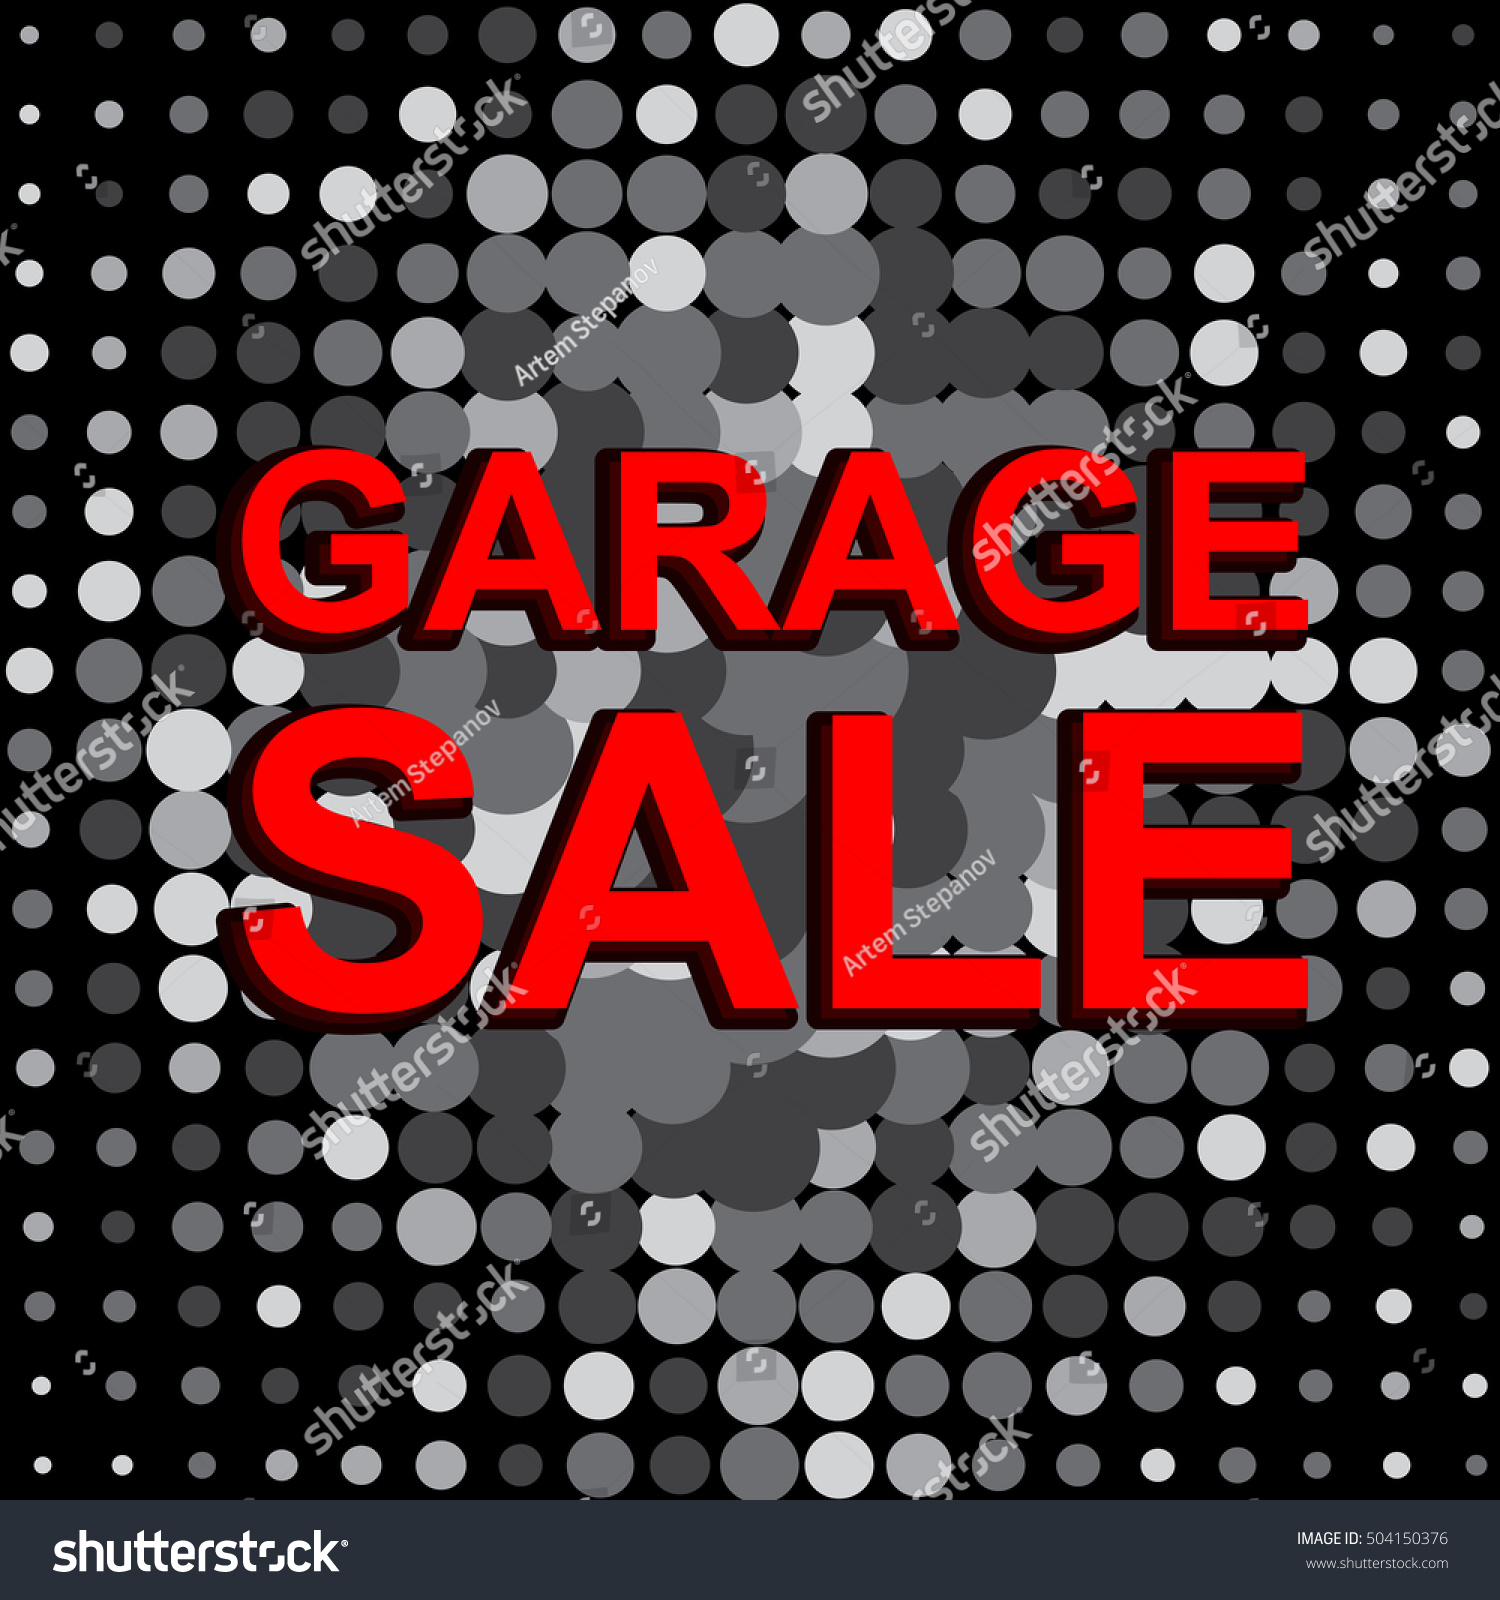 big sale poster with garage sale text advertising monochrome and red vector banner template